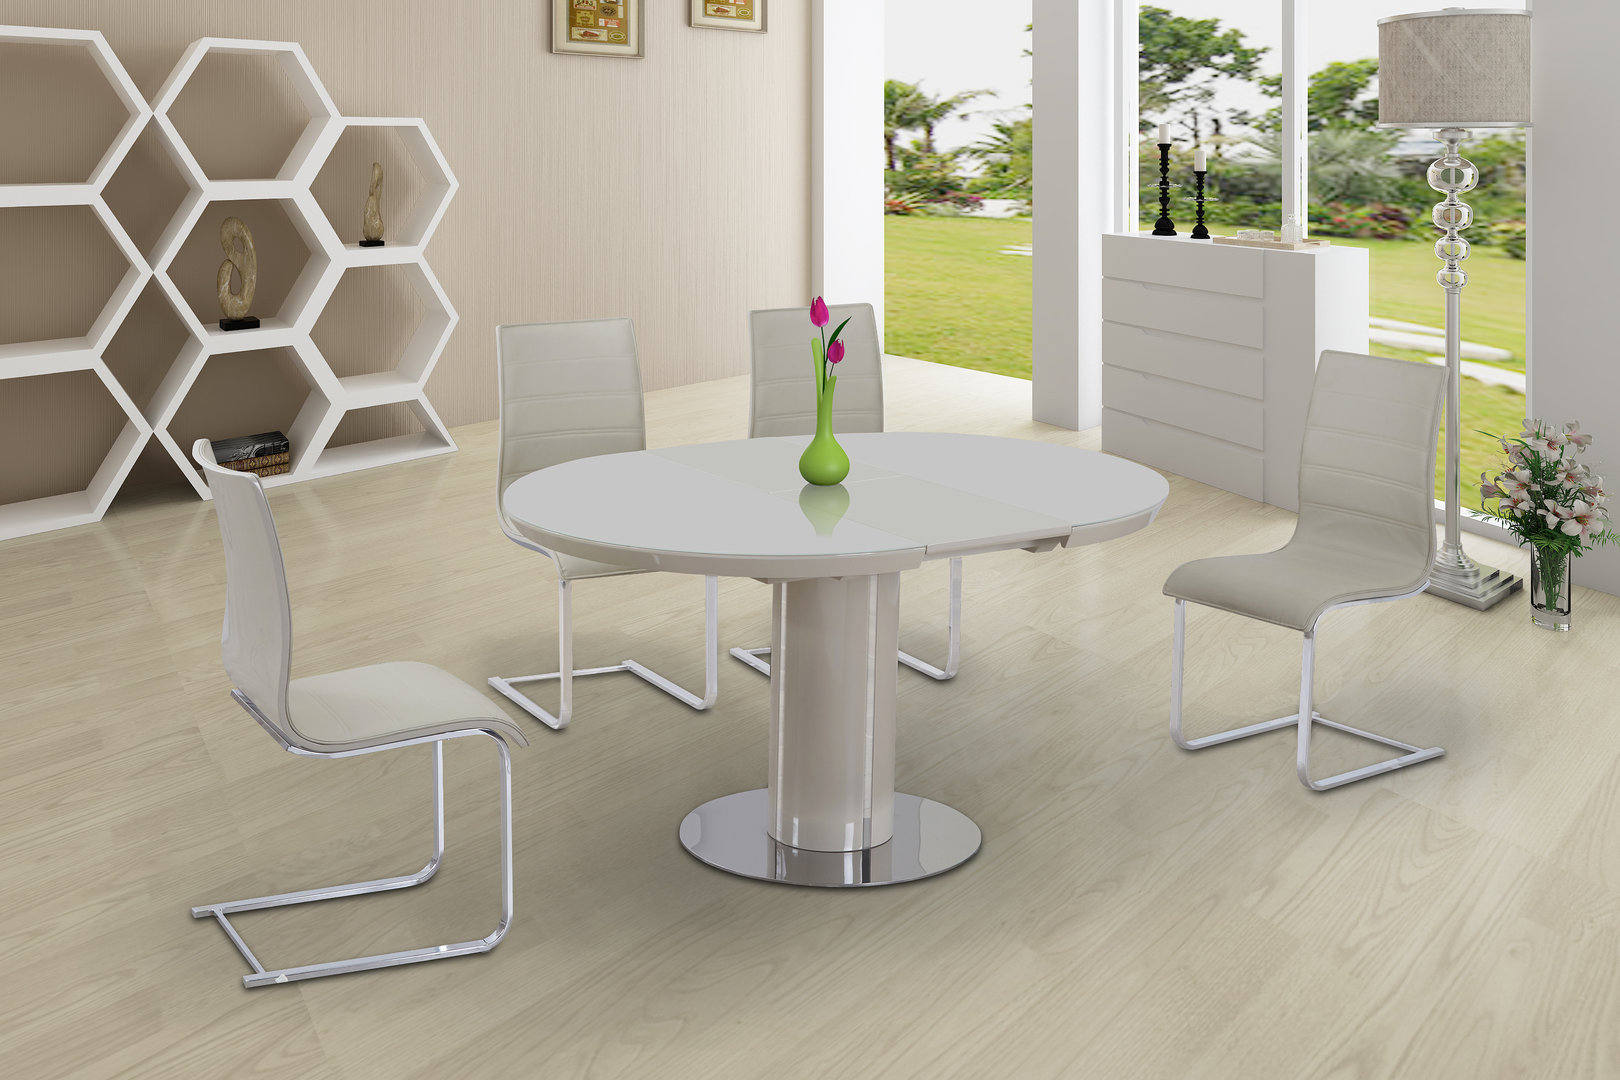 Round Cream Glass High Gloss Dining Table and 4 Chairs. Round Cream Glass High Gloss Dining Table   4 Chairs   Homegenies